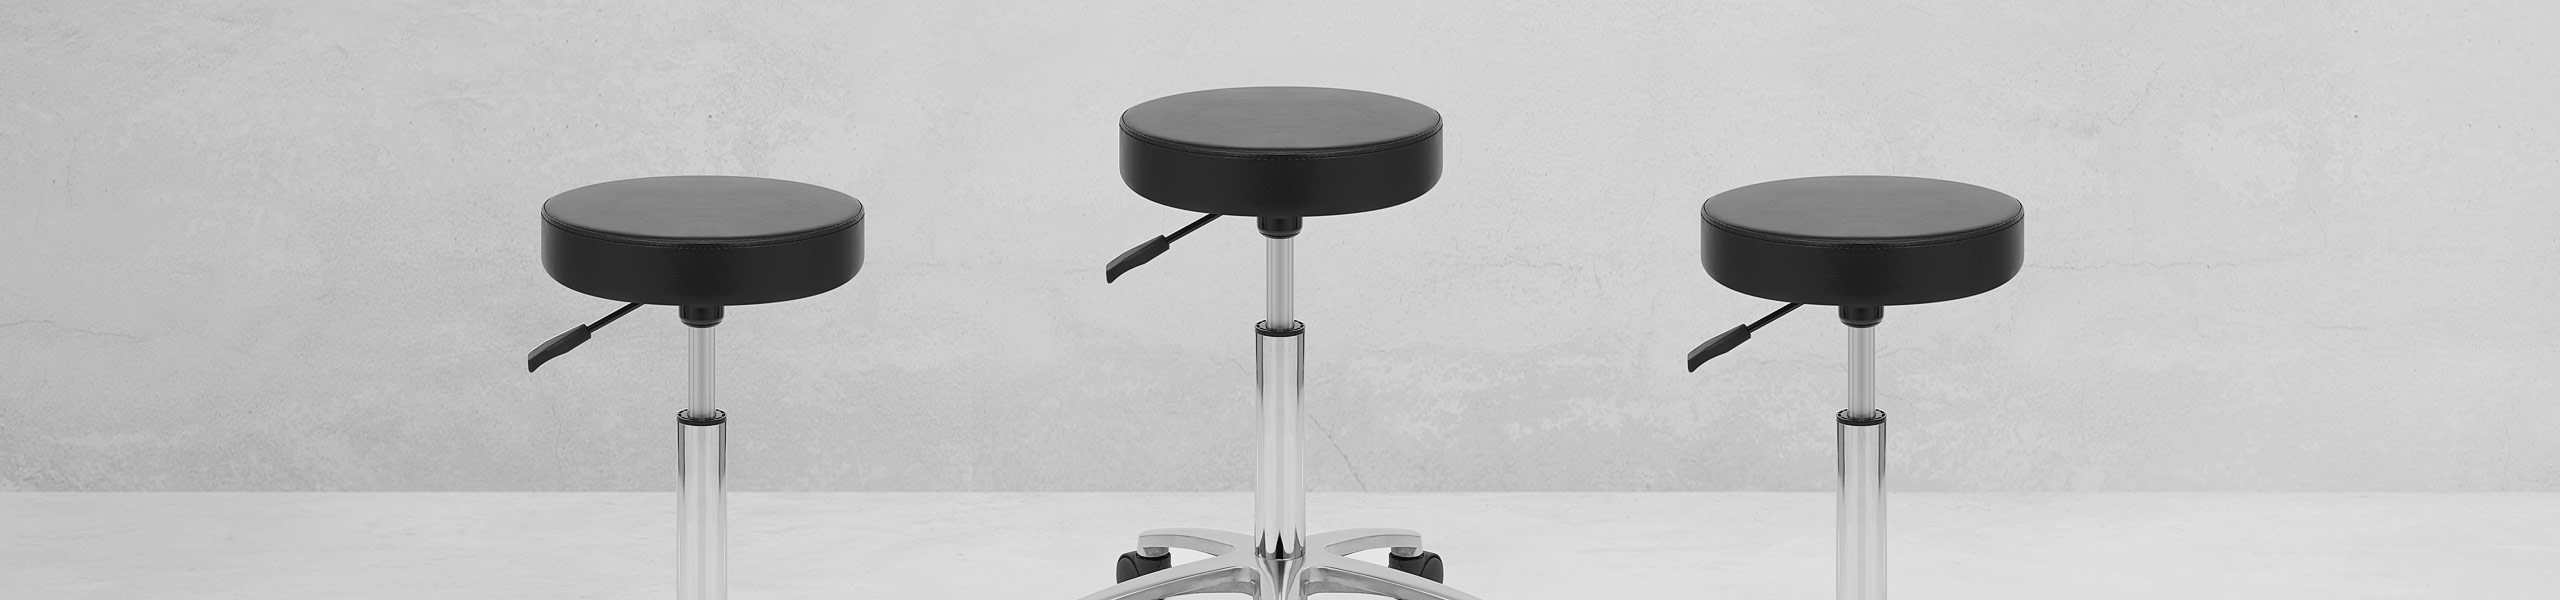 Swivel Stool With Wheels Black Video Banner